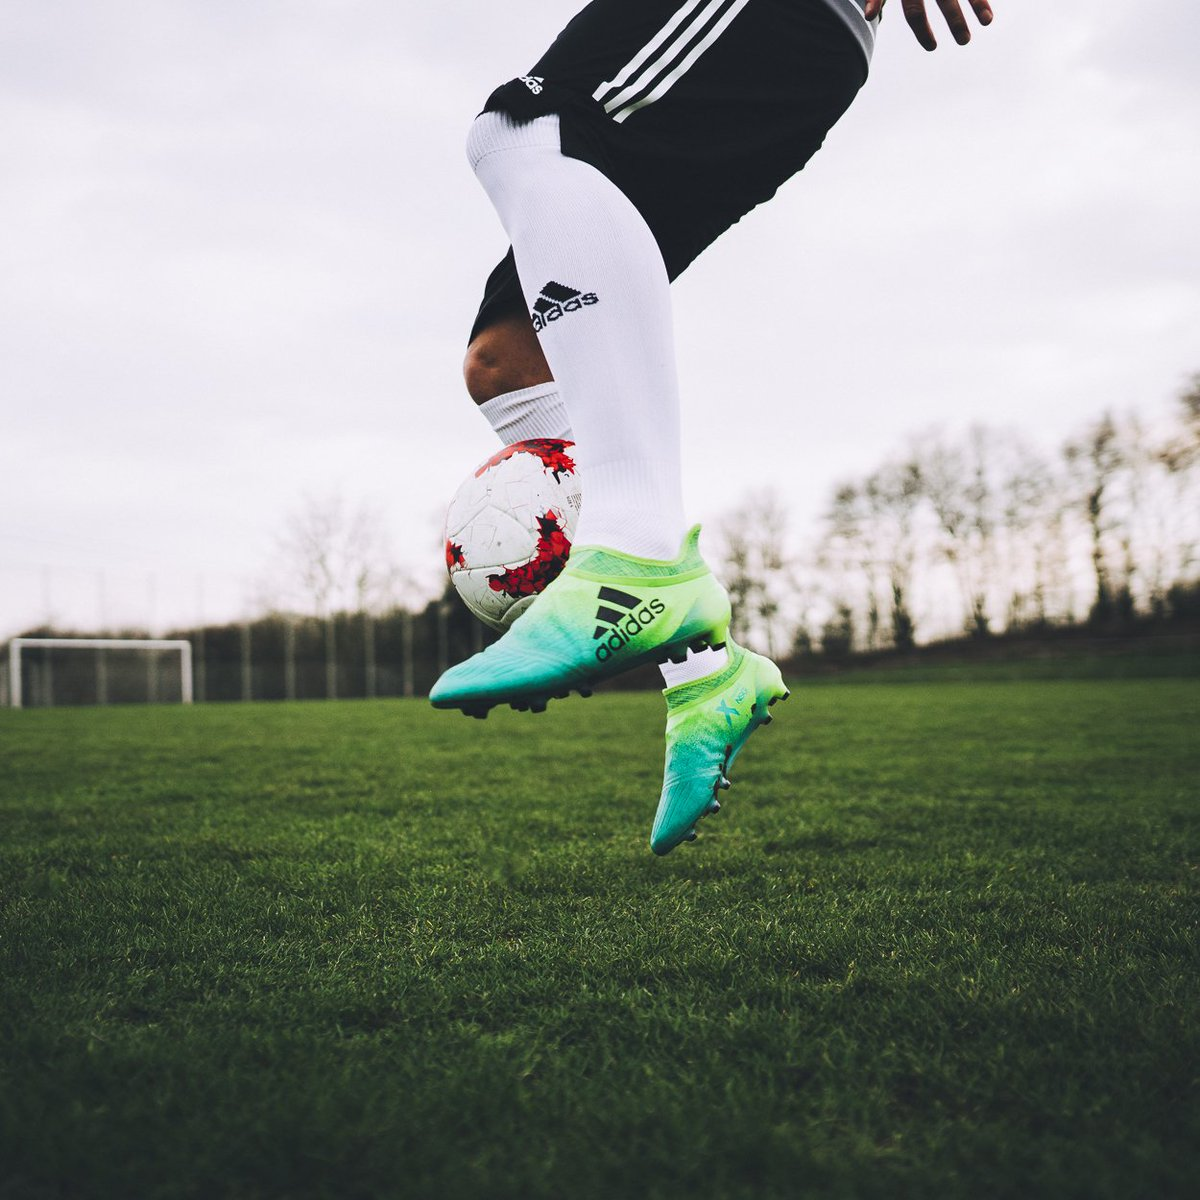 Start your engines. 🔋💨 Shop the new @adidasfootball Turbocharge #X16+ Purechaos online & select stores. #NeverFolow https://t.co/5QTShOF55s